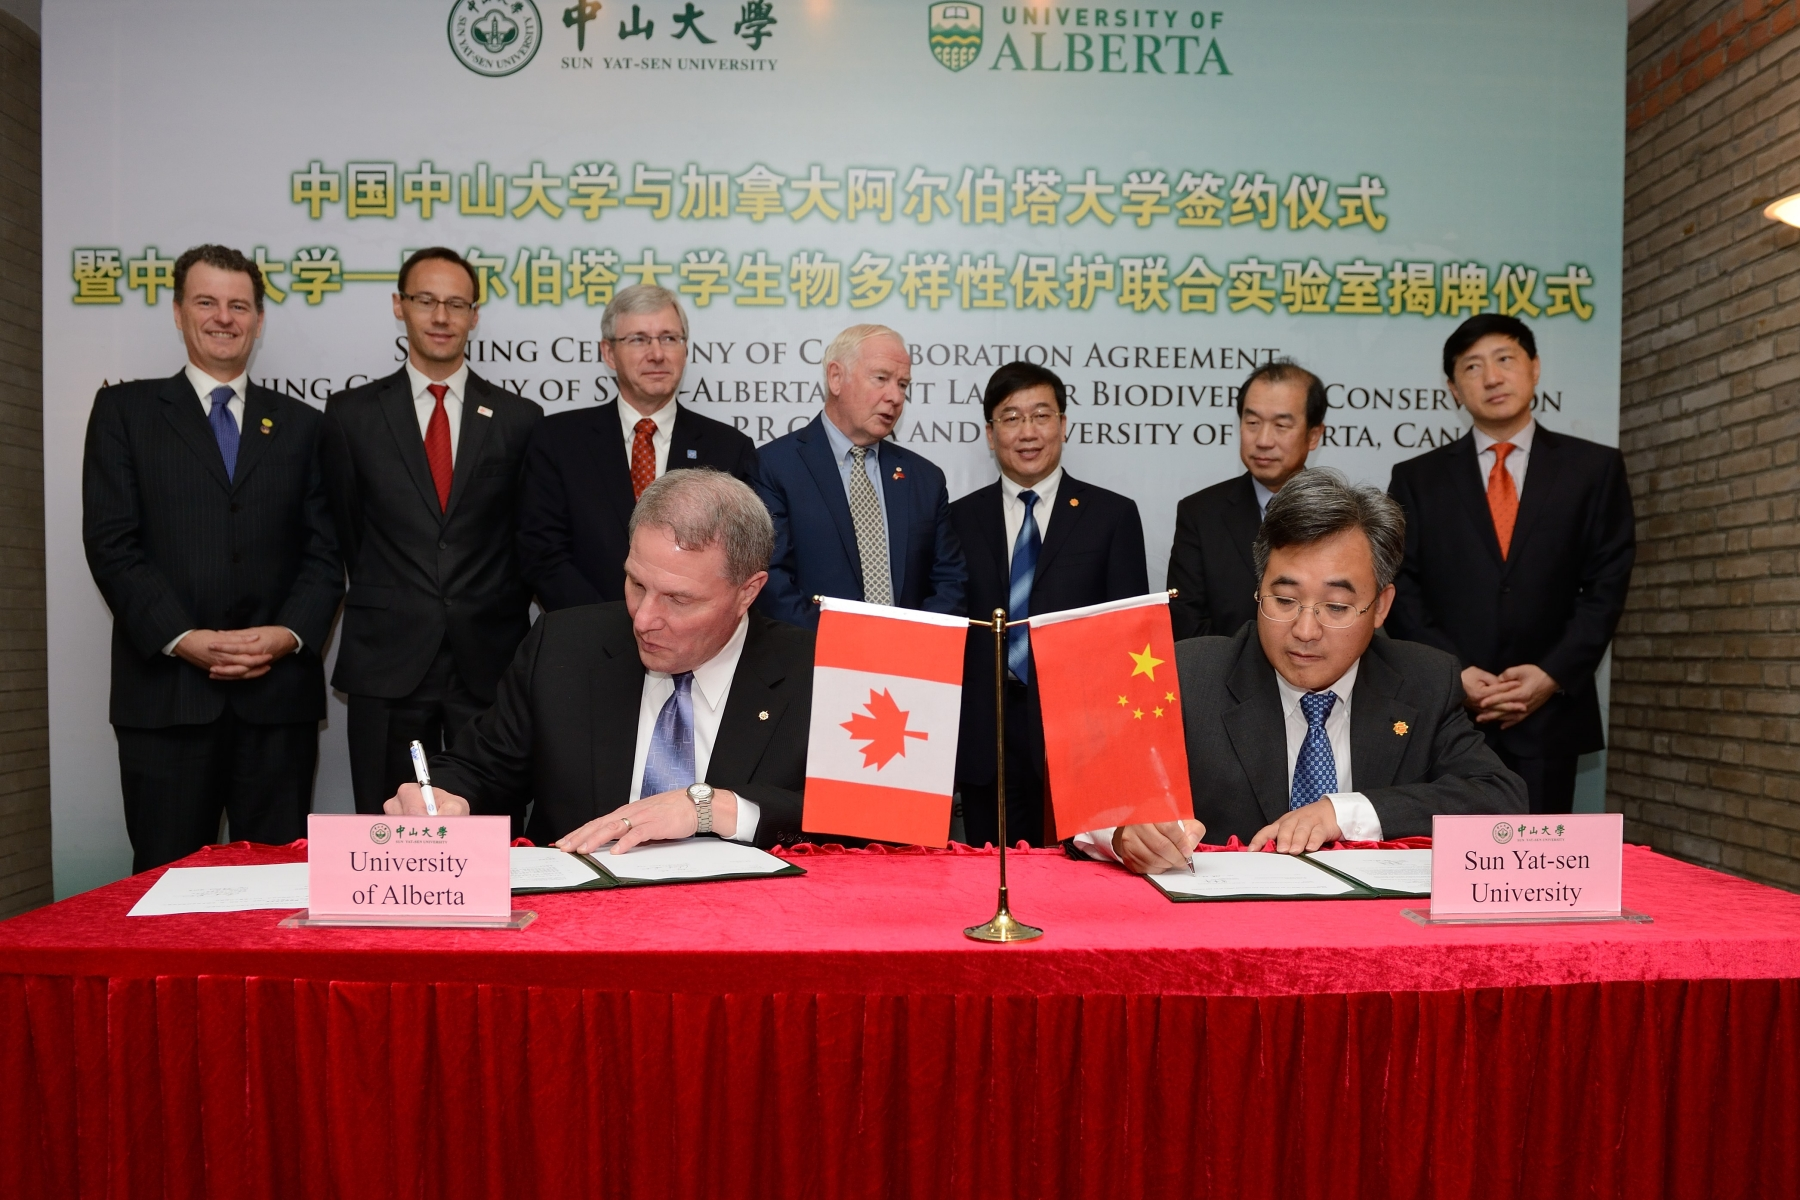 His Excellency witnessed the signing of an agreement between the University of Alberta and Sun Yat-sen University regarding the China Scholarship Council.